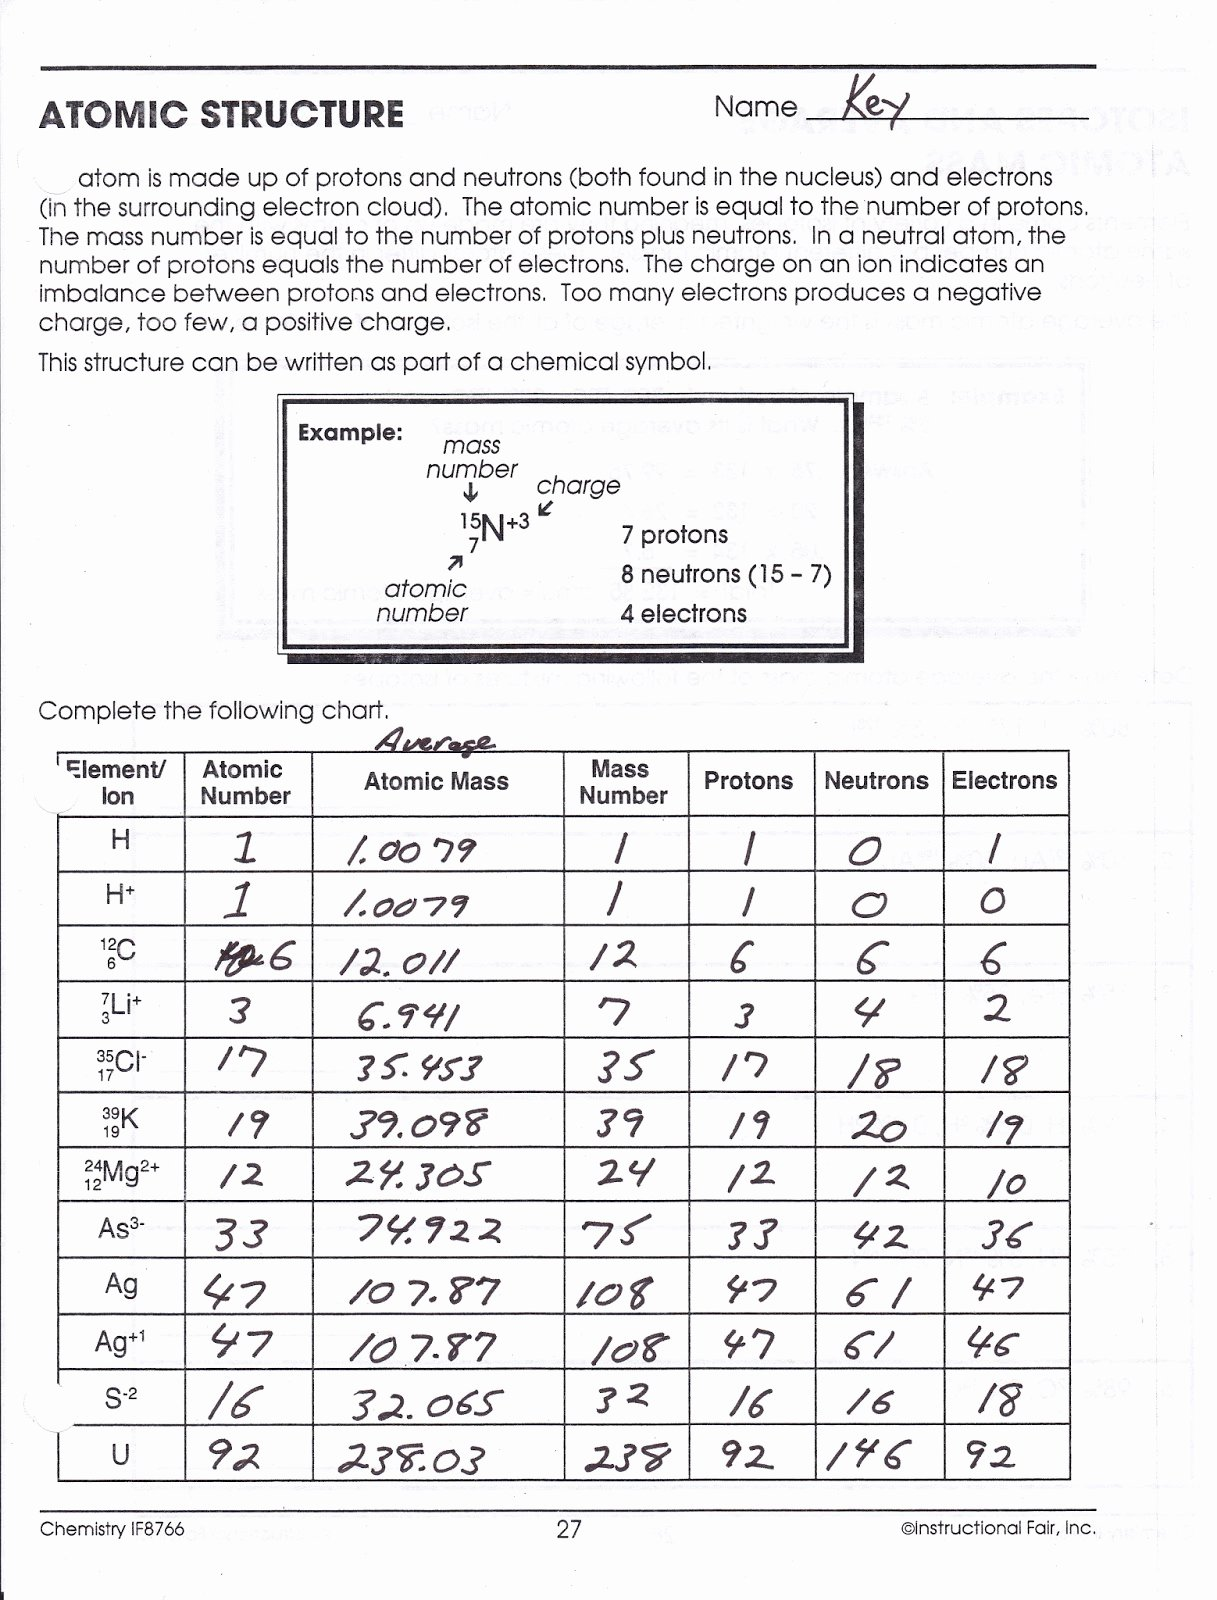 Worksheet atomic Structure Answers Inspirational atomic Structure Worksheet Answer Key the Best Worksheets